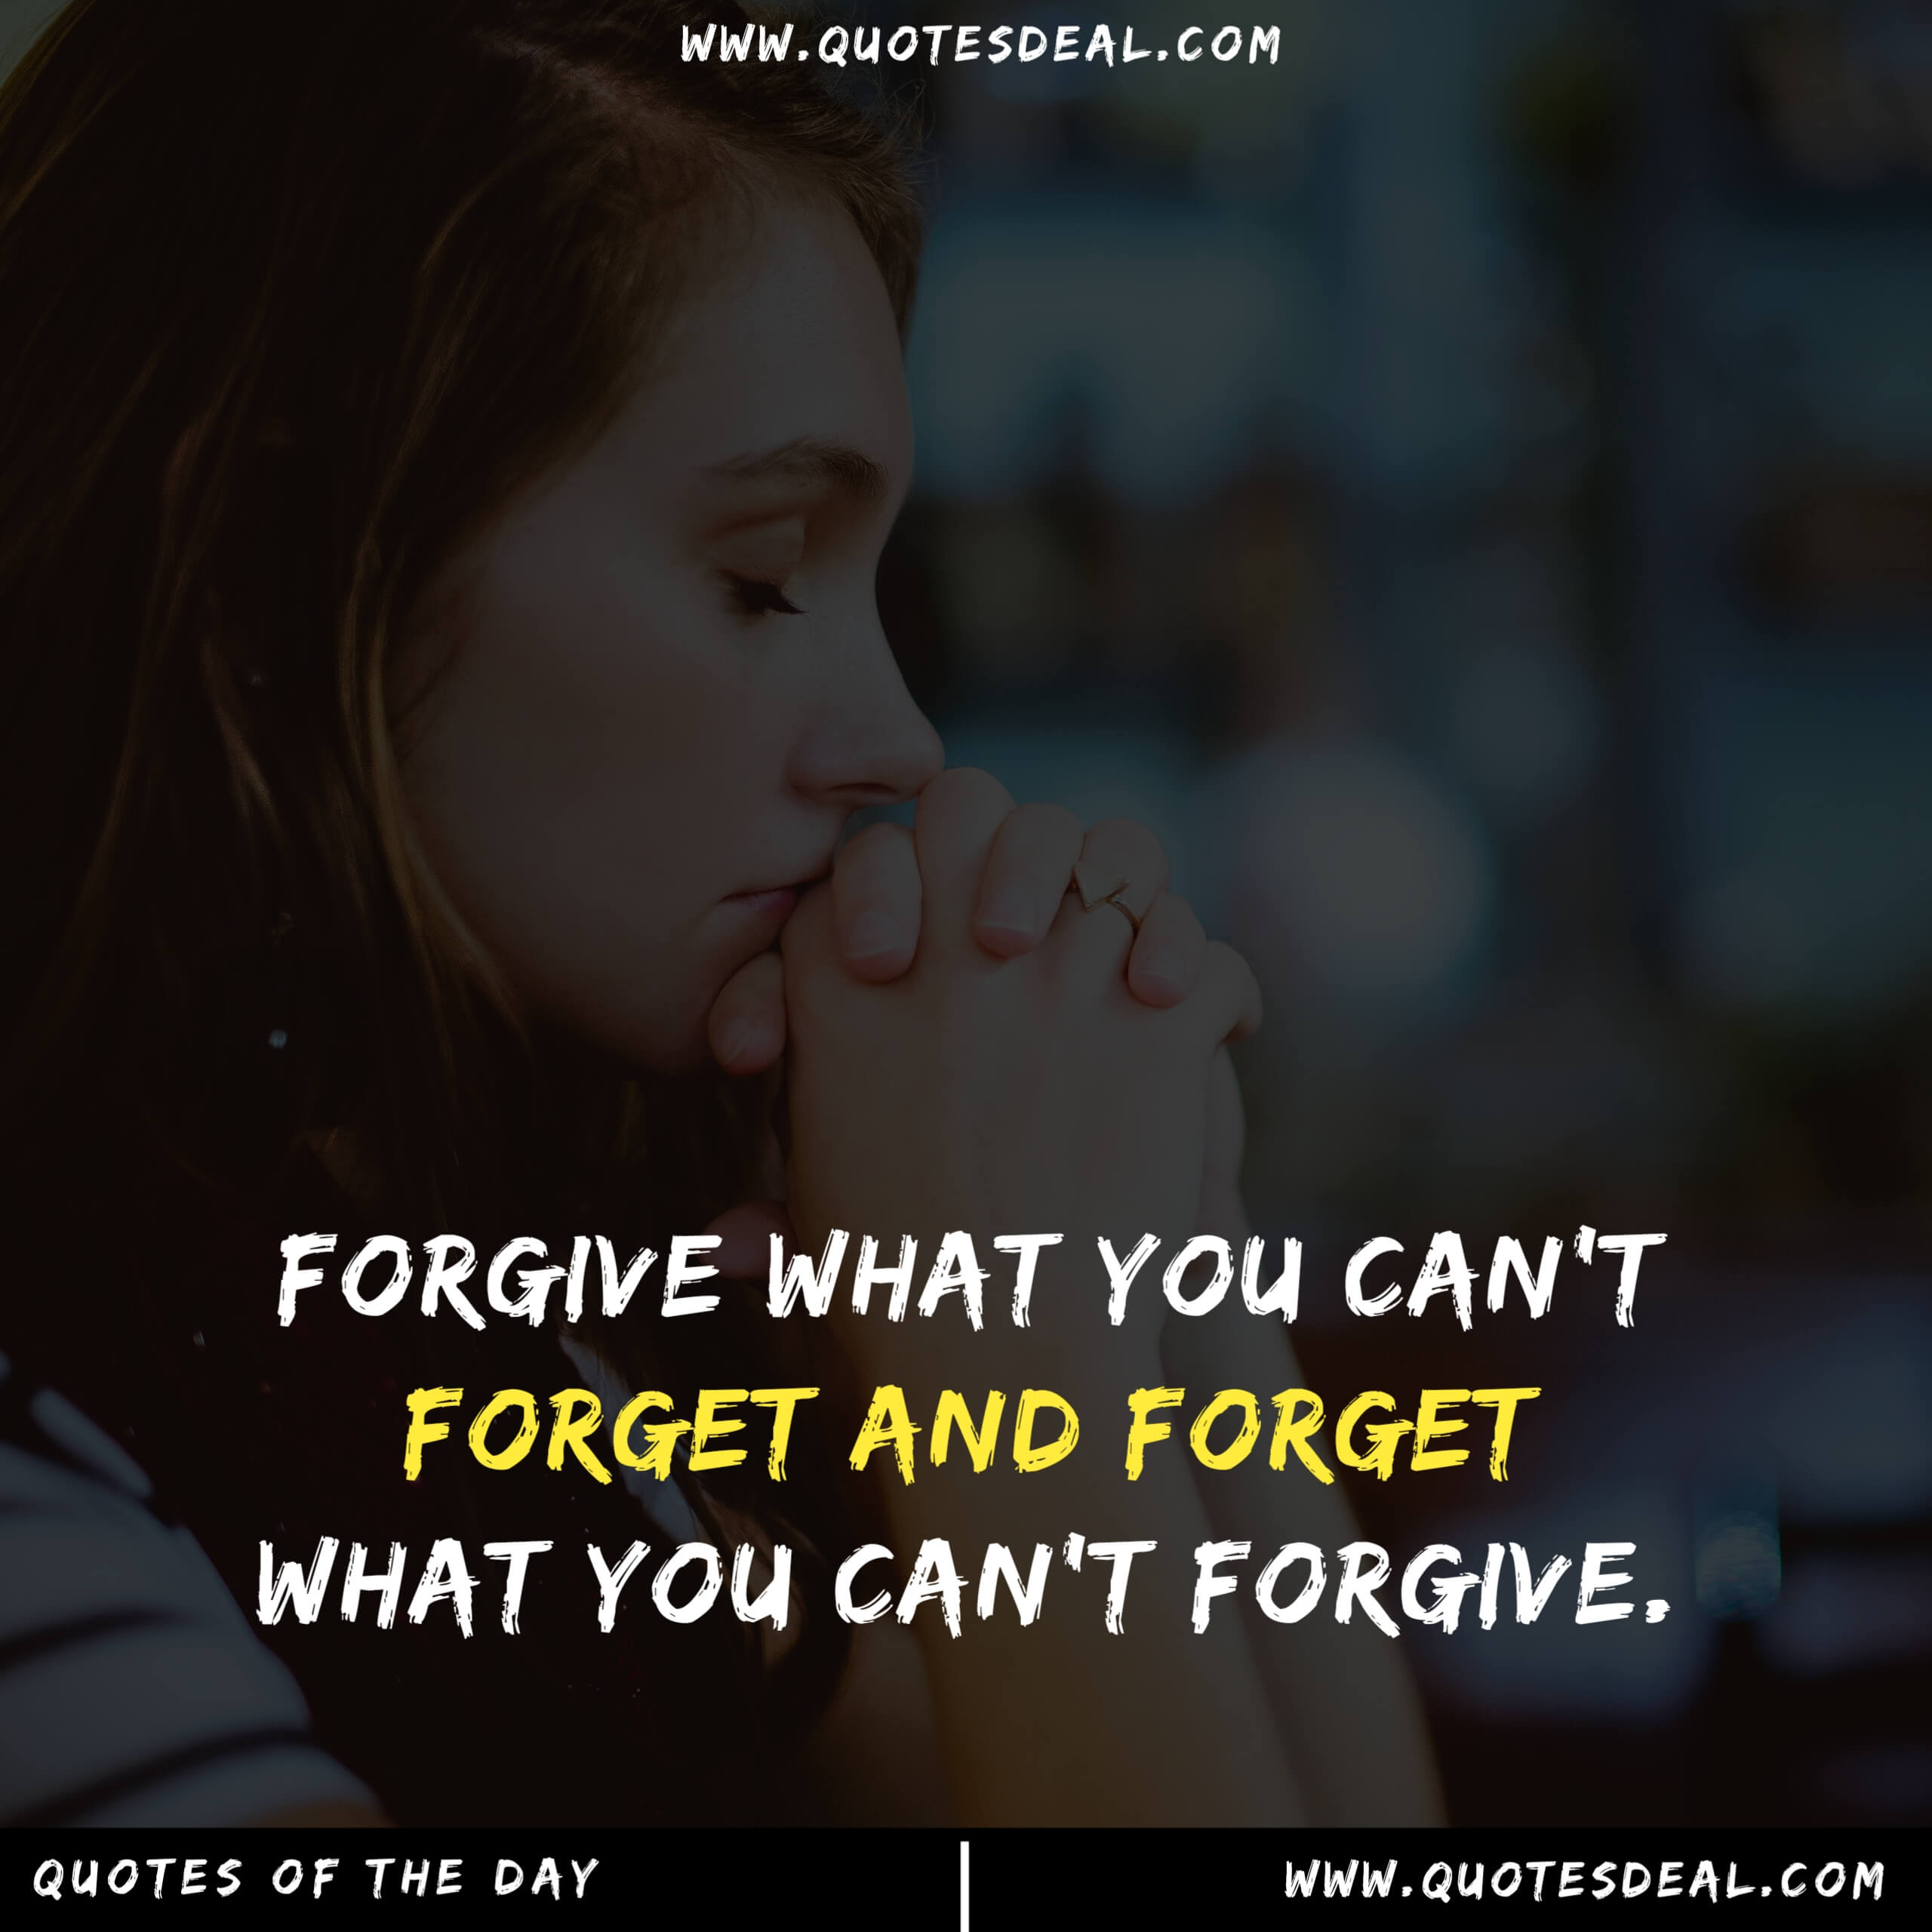 Forgive what you